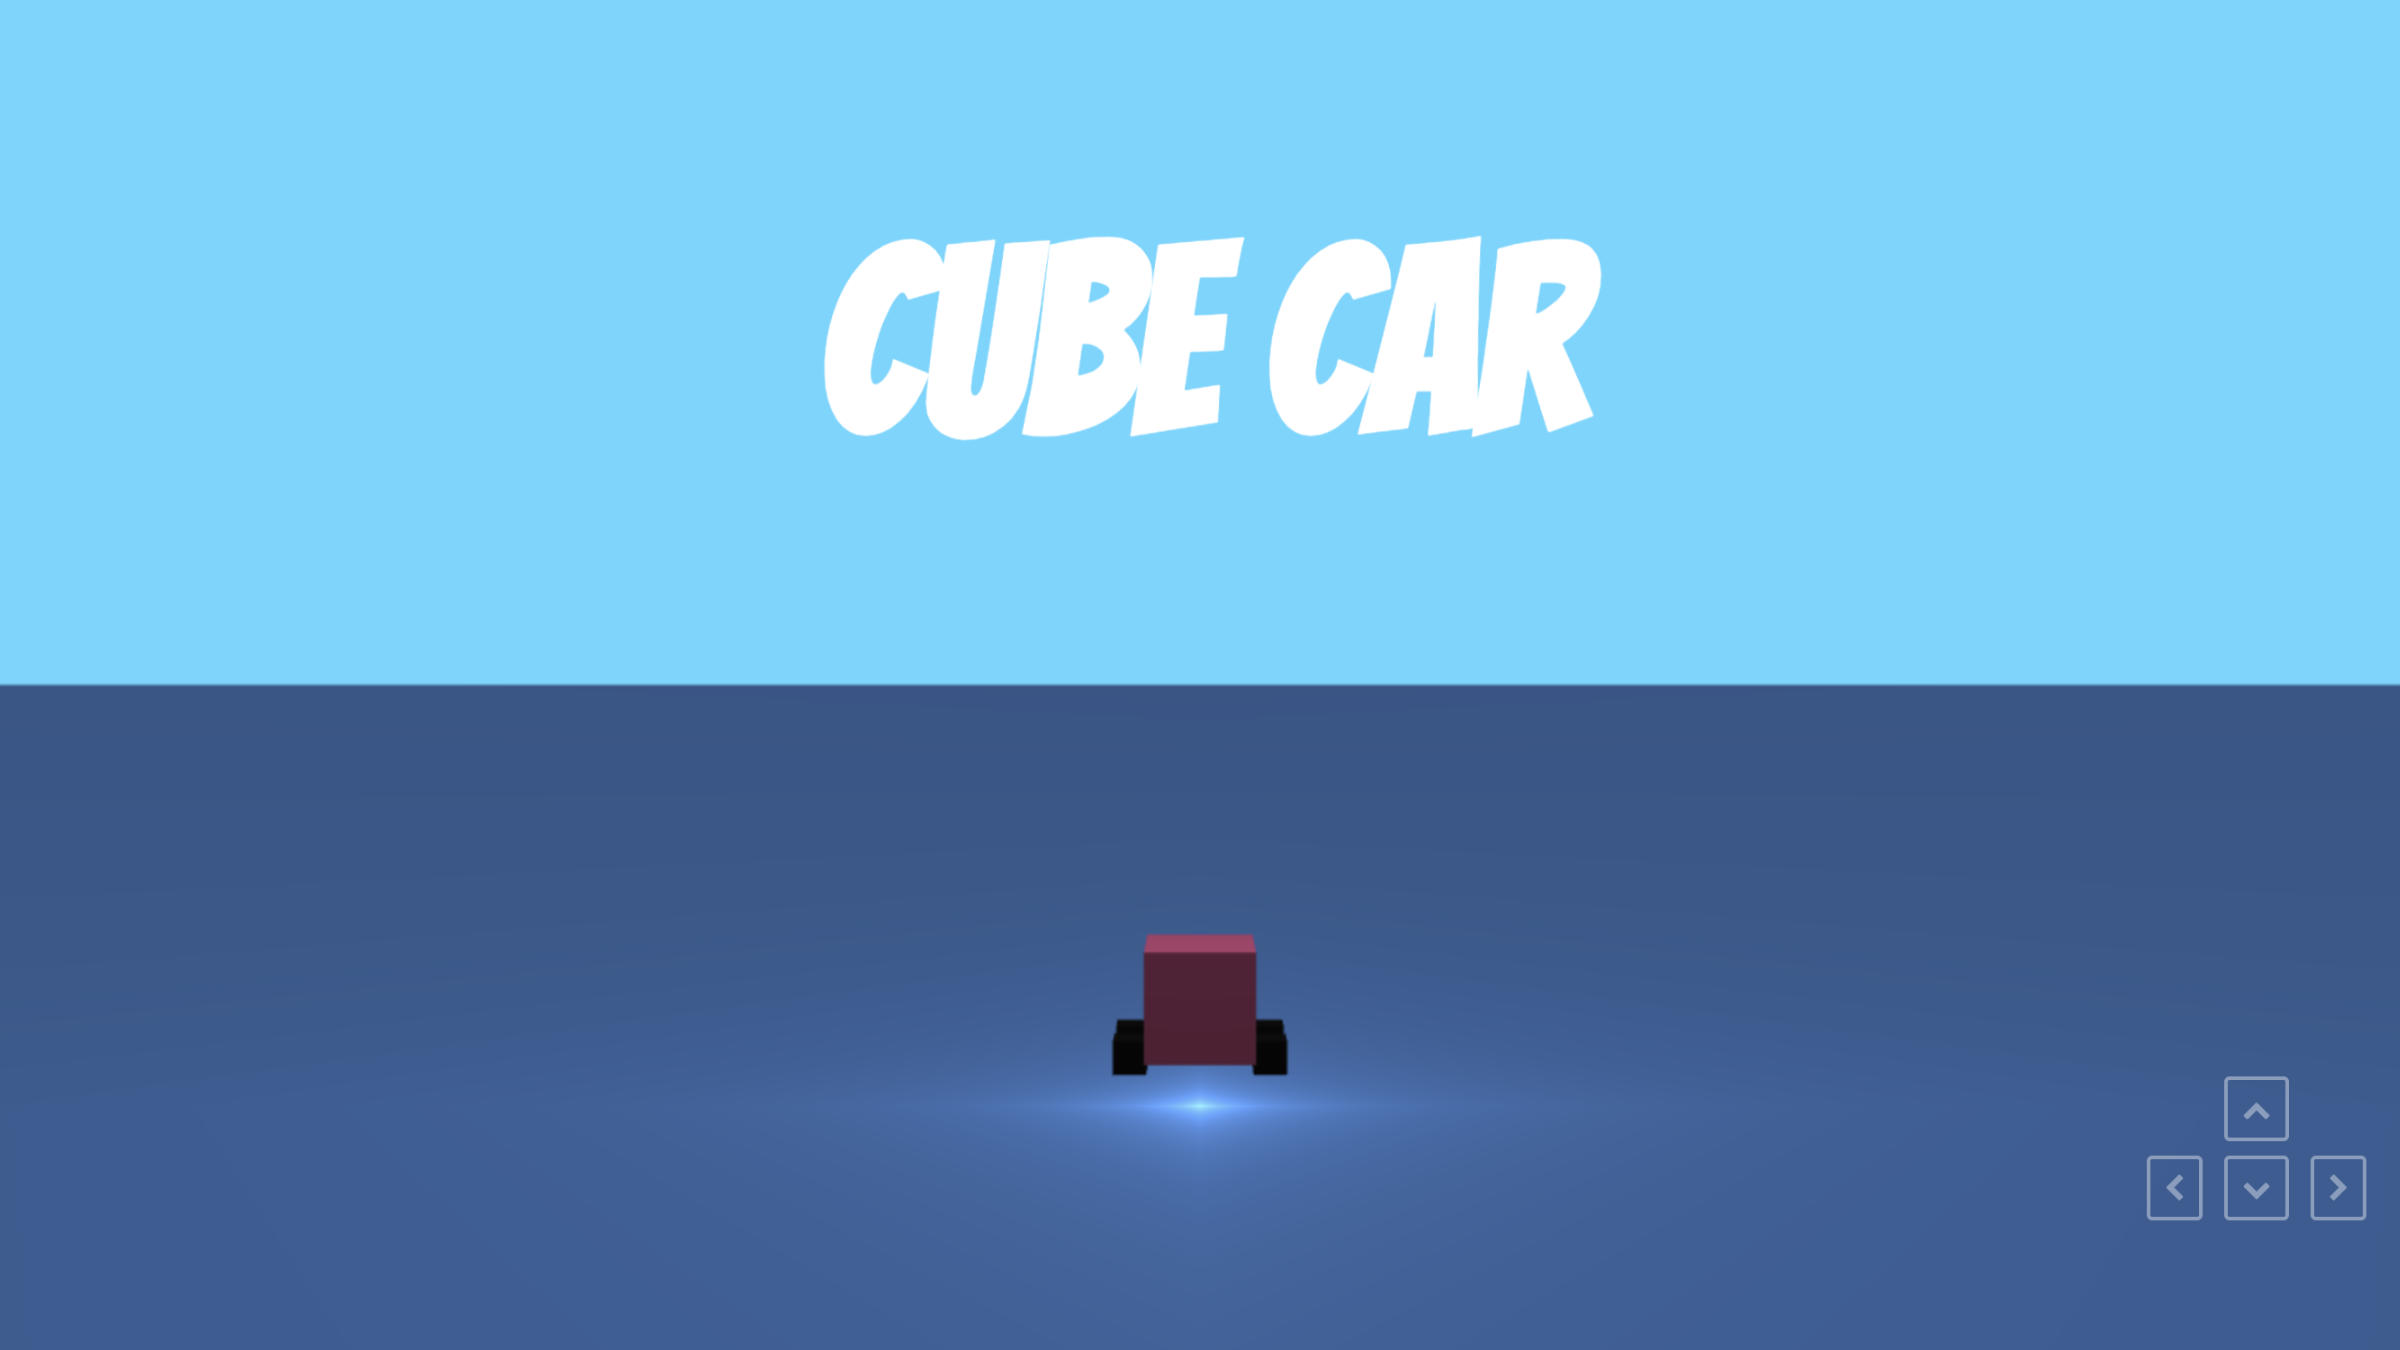 Cube Car – A foray into programming **graphics shaders** using **WebGL** by Xander Gottlieb